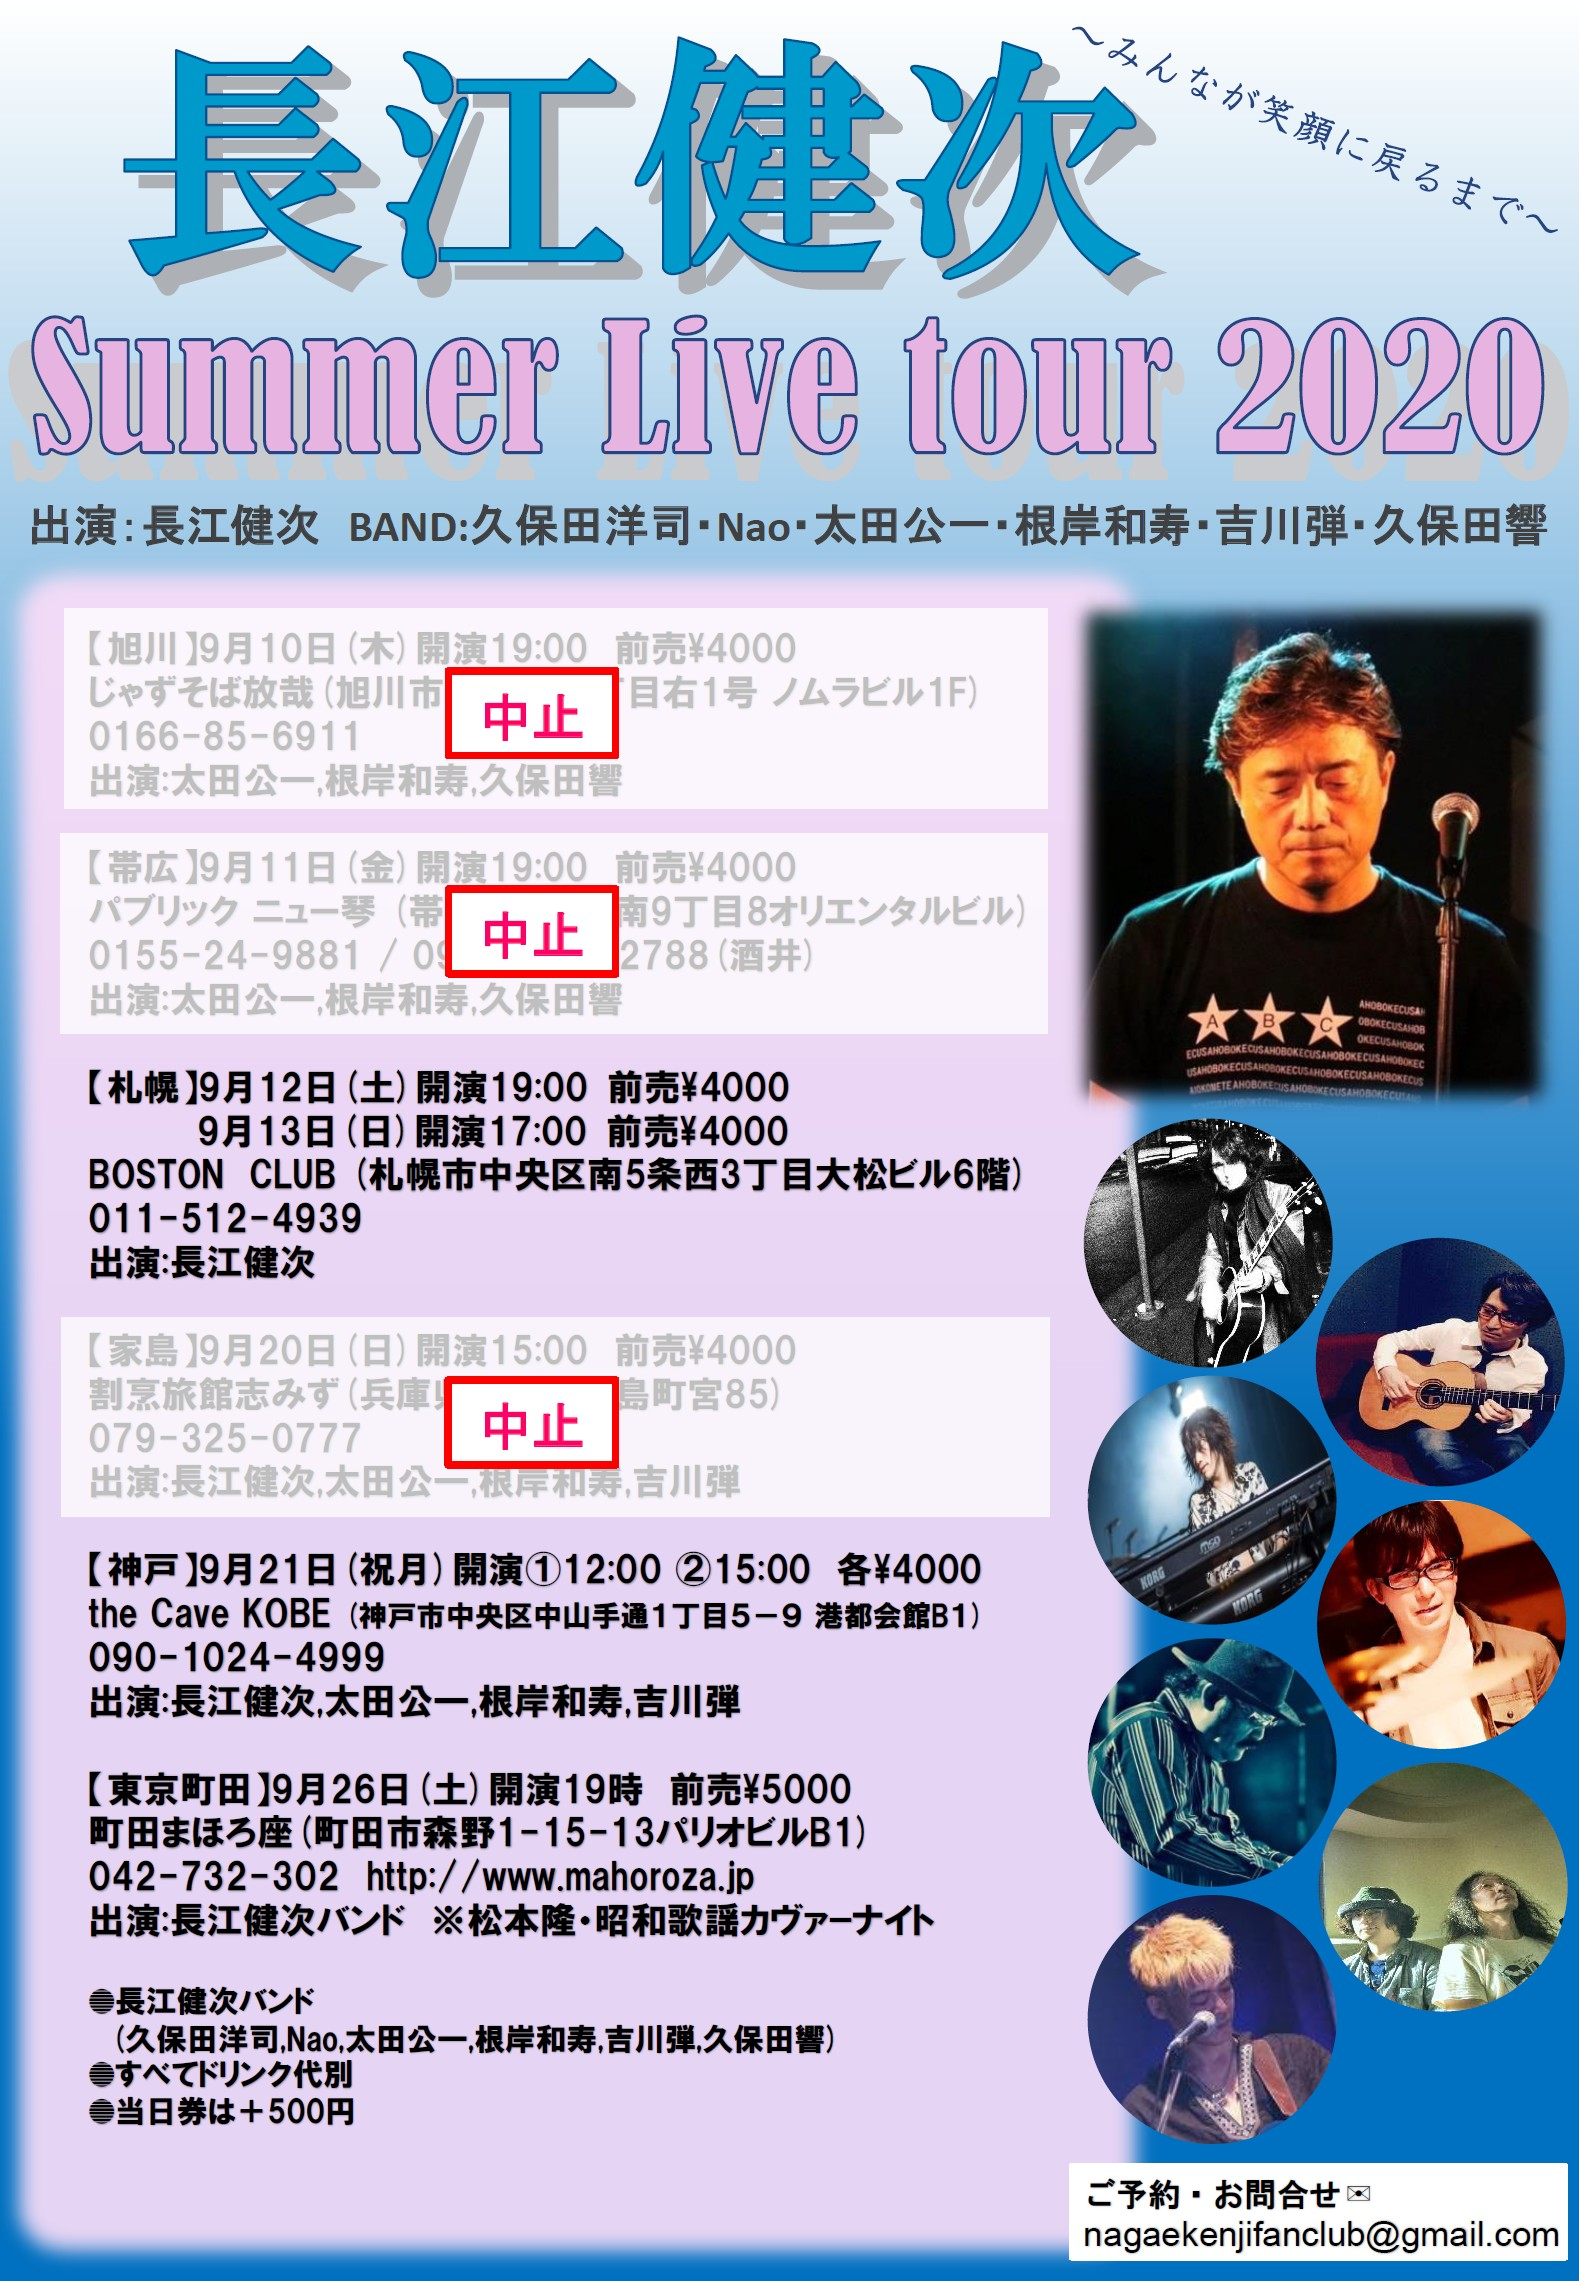 【札幌】長江健次Summer Live tour 2020 @BOSTON CLUB